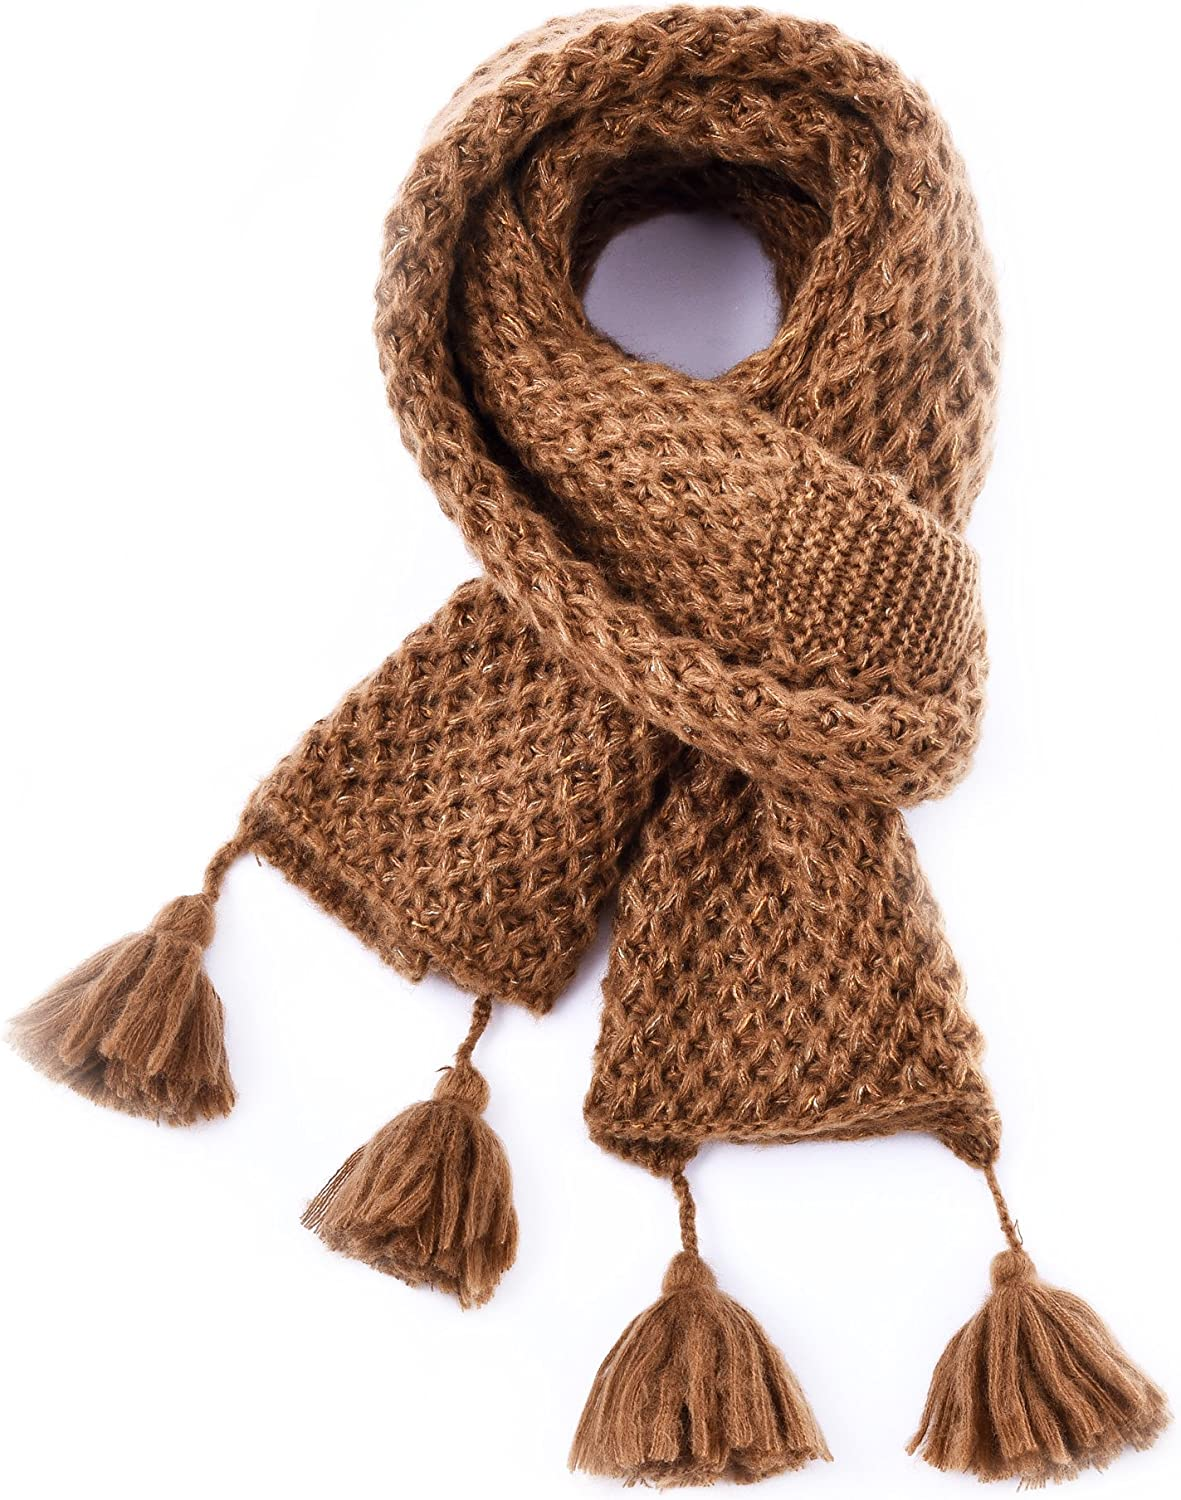 Winter Fashion Thick Knitted Scarf,RiscaWin Thick Cable Knit Wrap Chunky Warm Glitter Metallic Scarf with Pom Poms